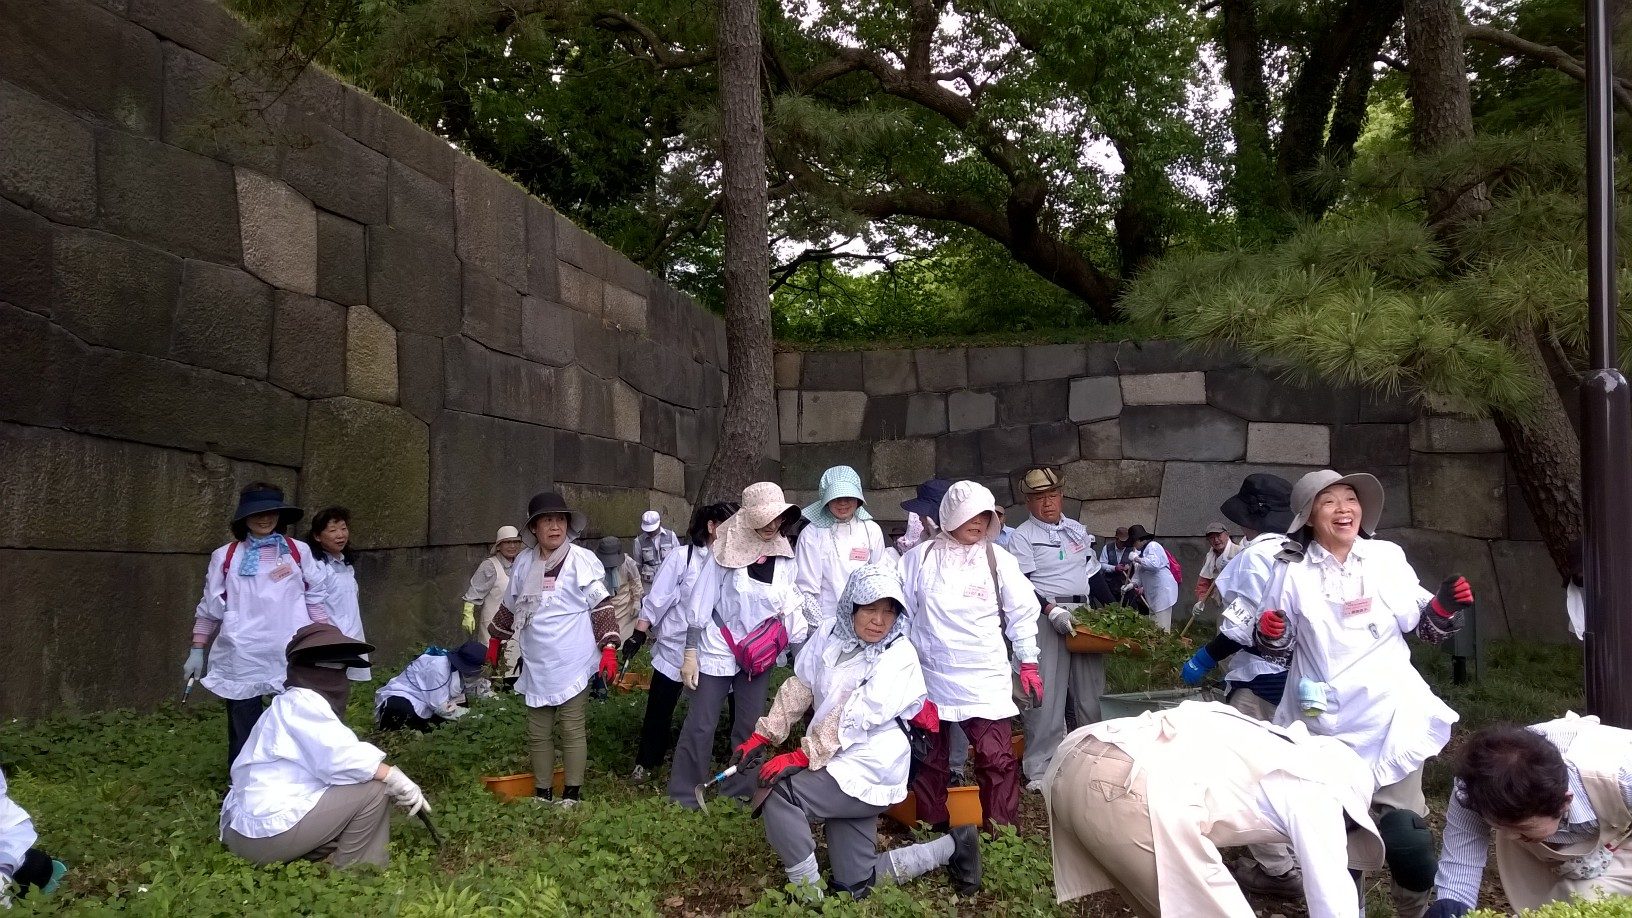 Volunteers cleaning the gardens of the Imperial Palace in Tokyo